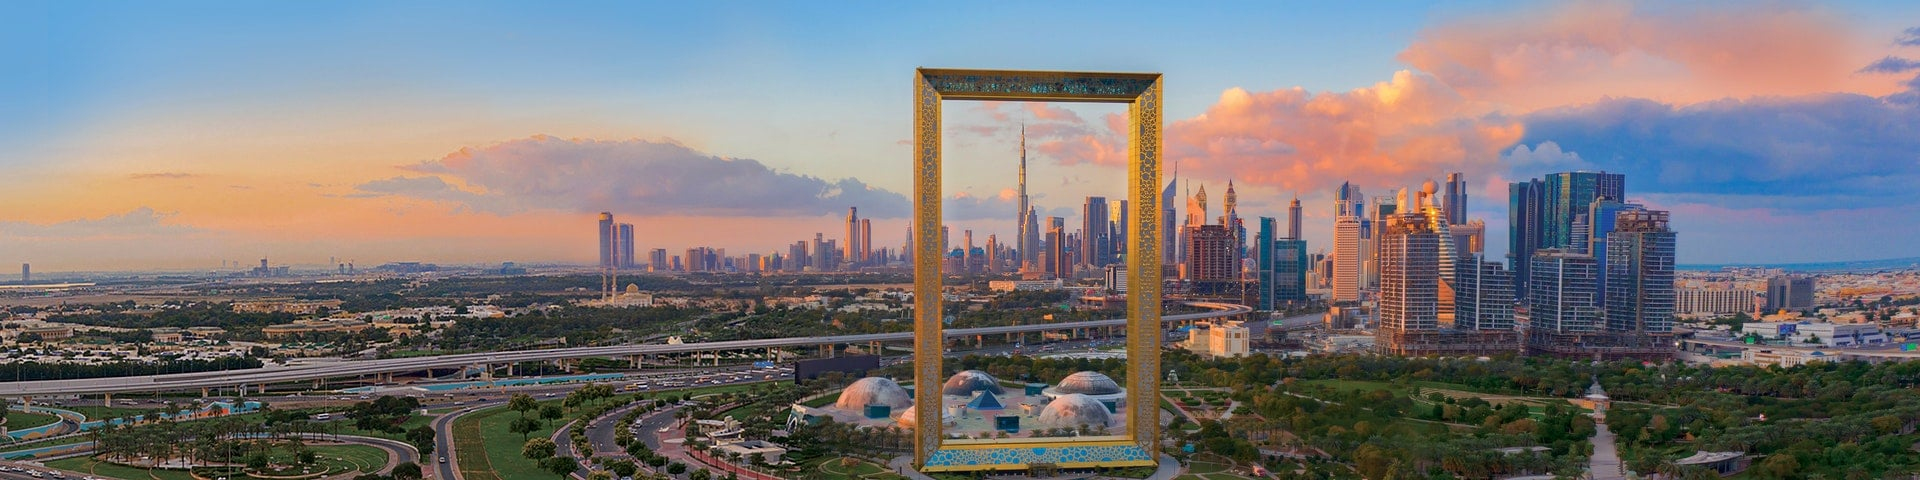 Aerial view of dubai frame at sunset